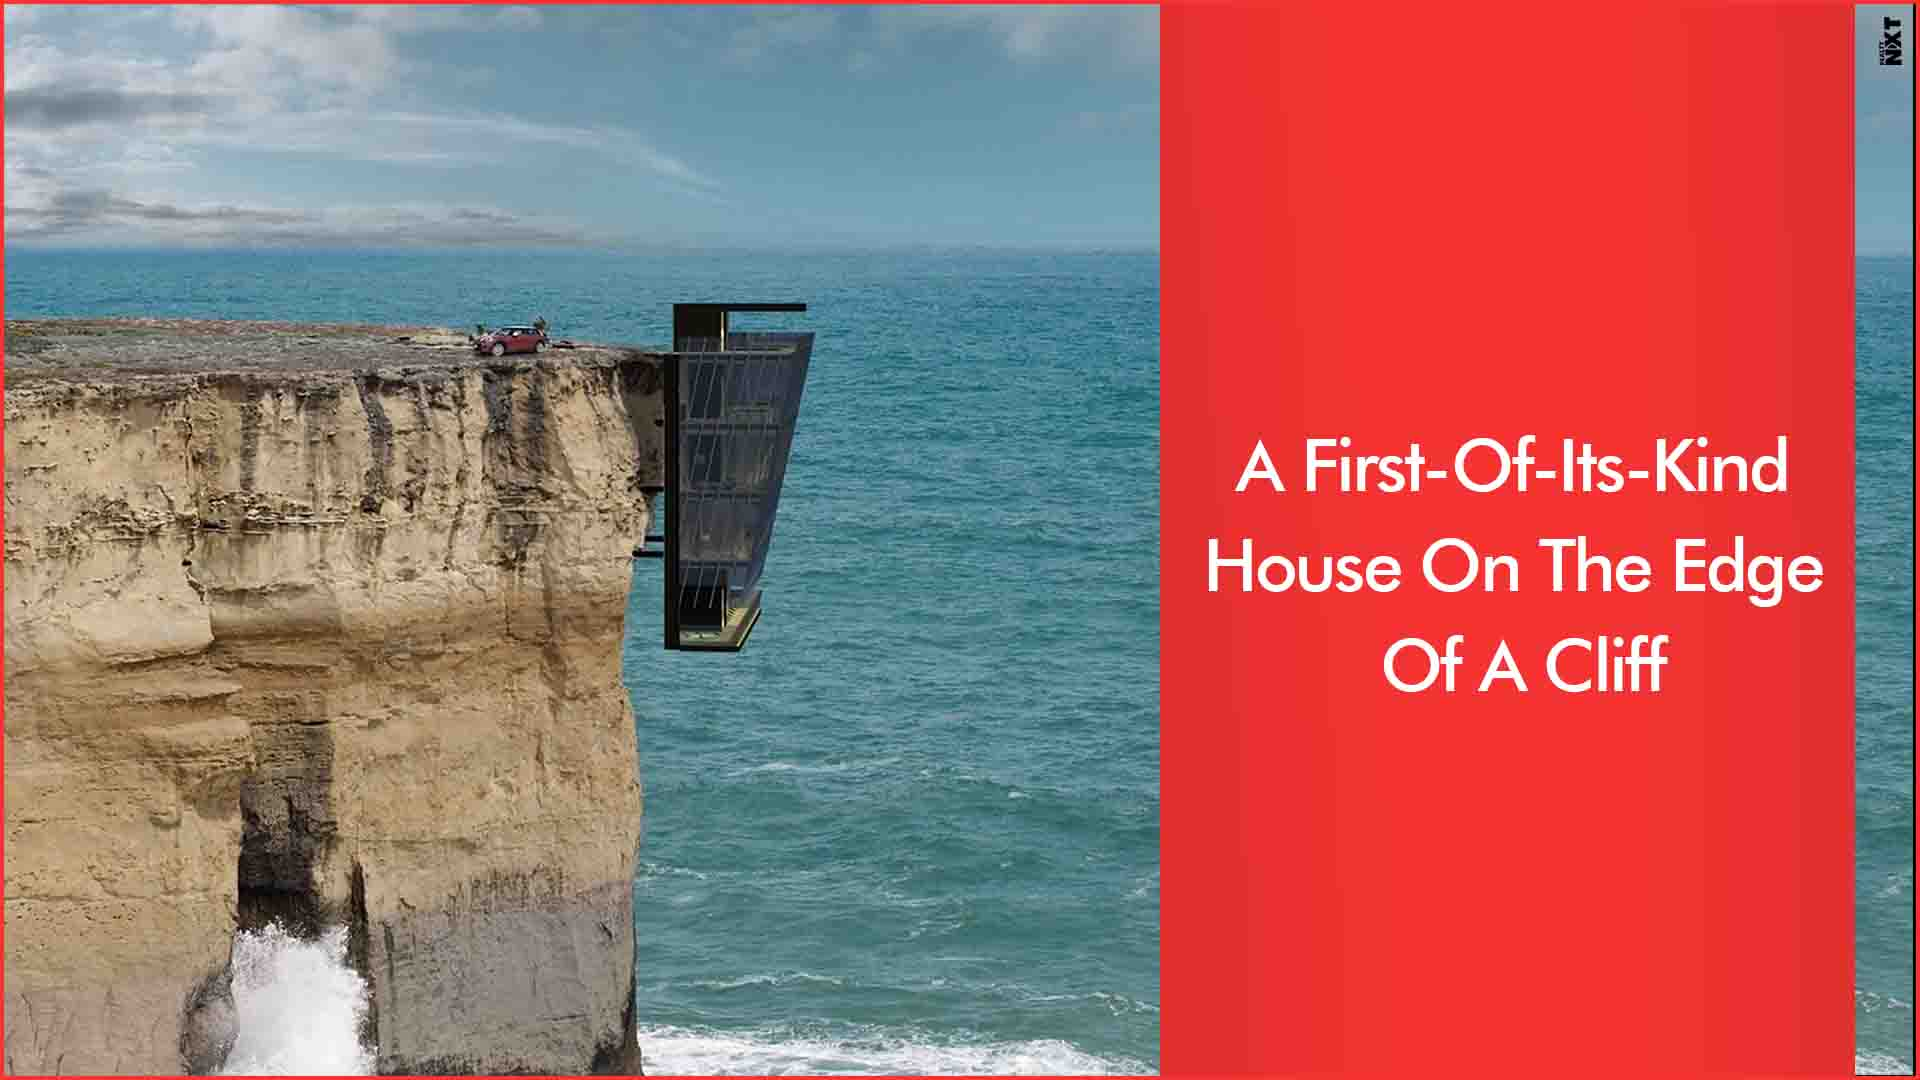 Australia's Cliff House Exudes Architectural Brilliance